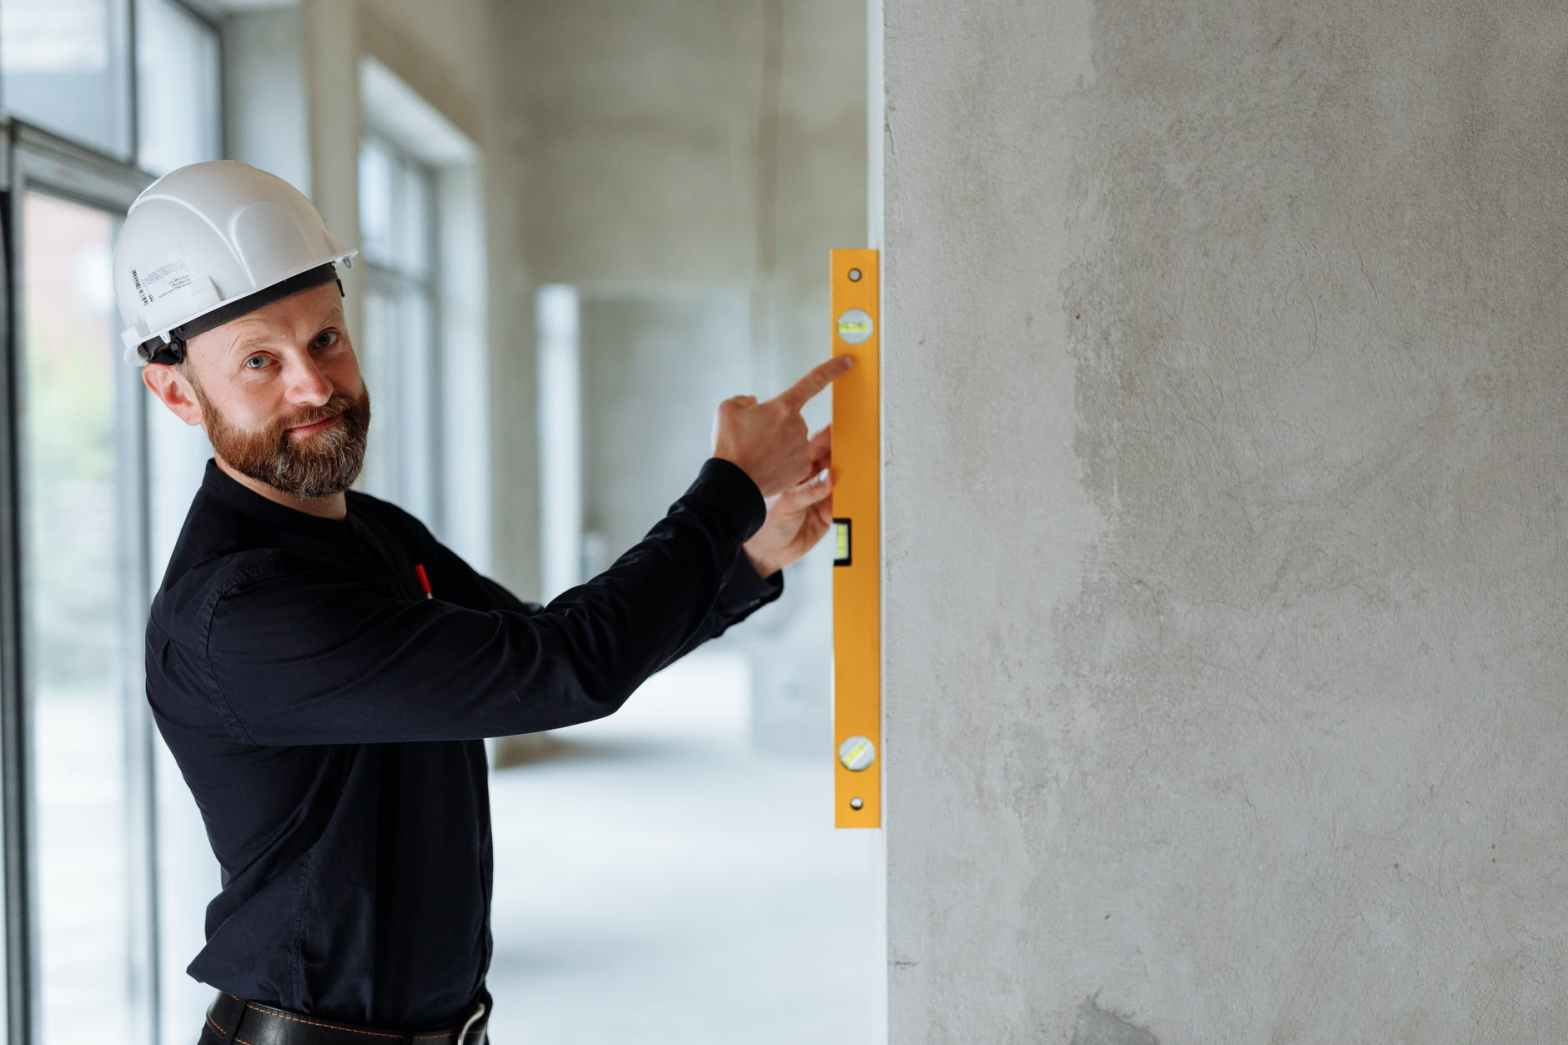 an engineer holding a spirit level against a wall